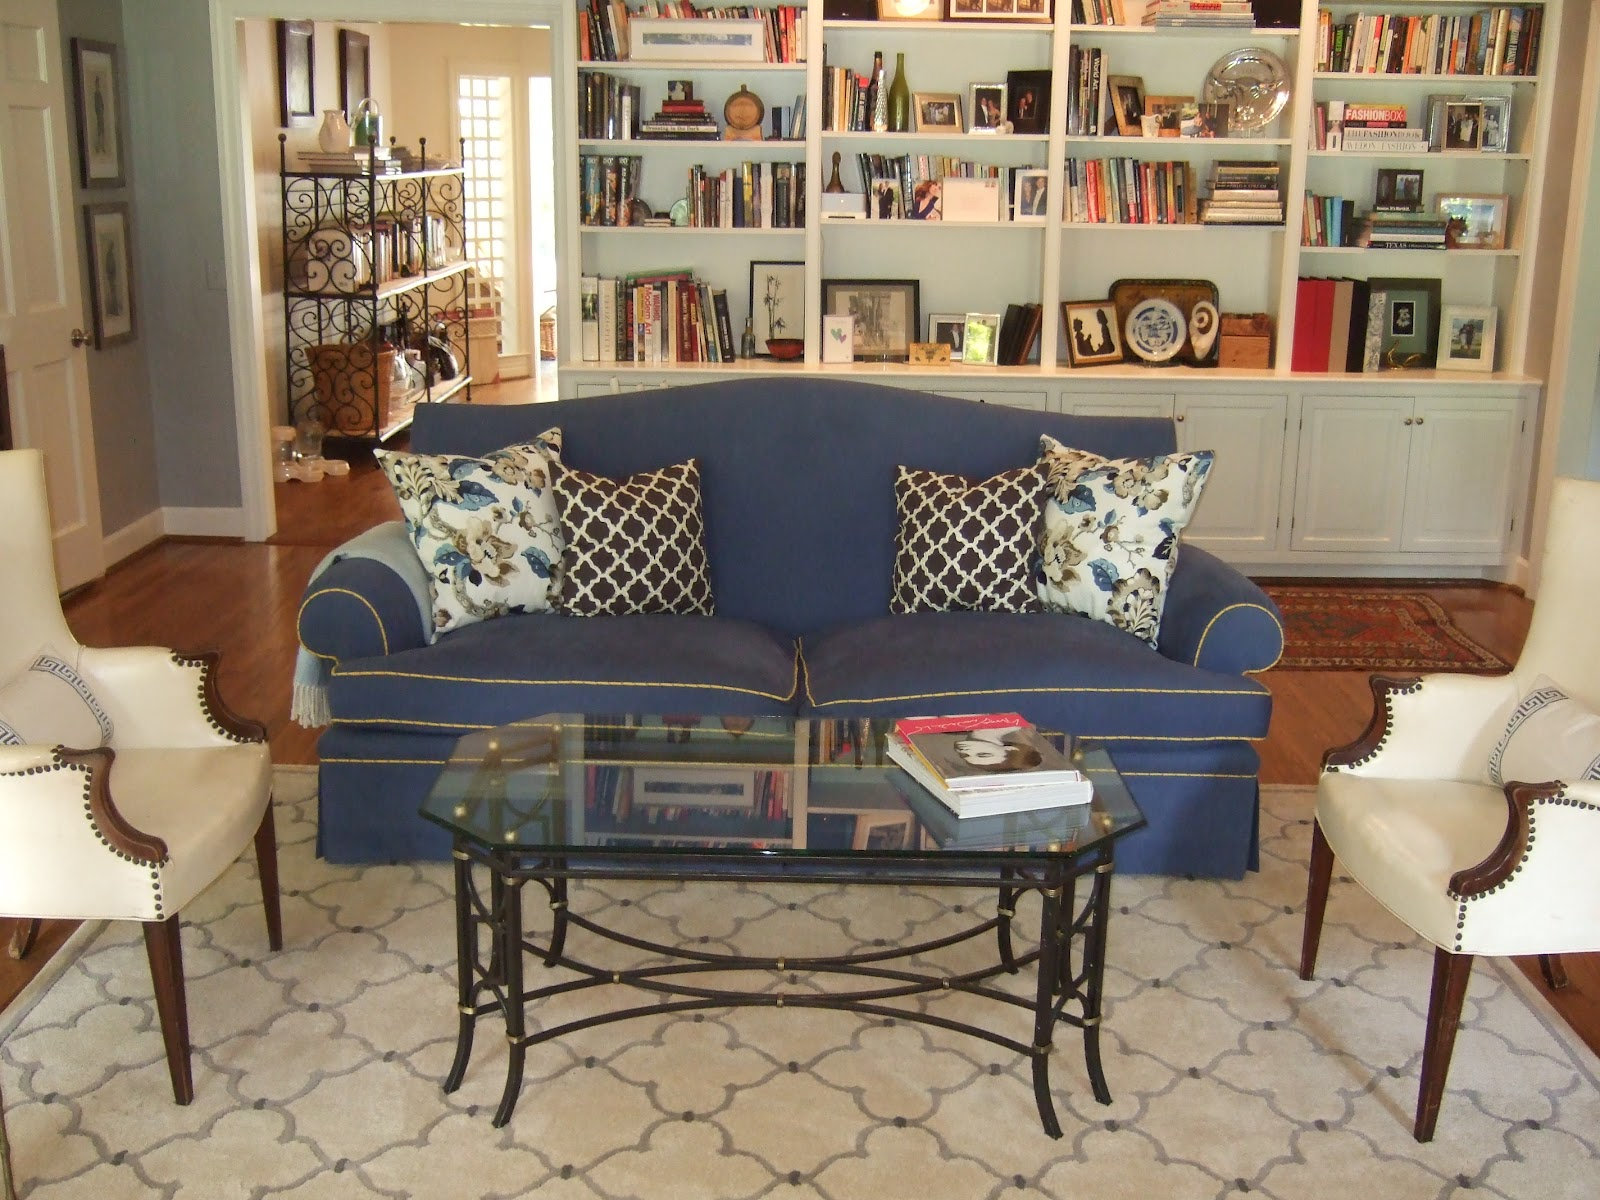 Best Slipcover for Sectional Design for Your Unique Seating Look